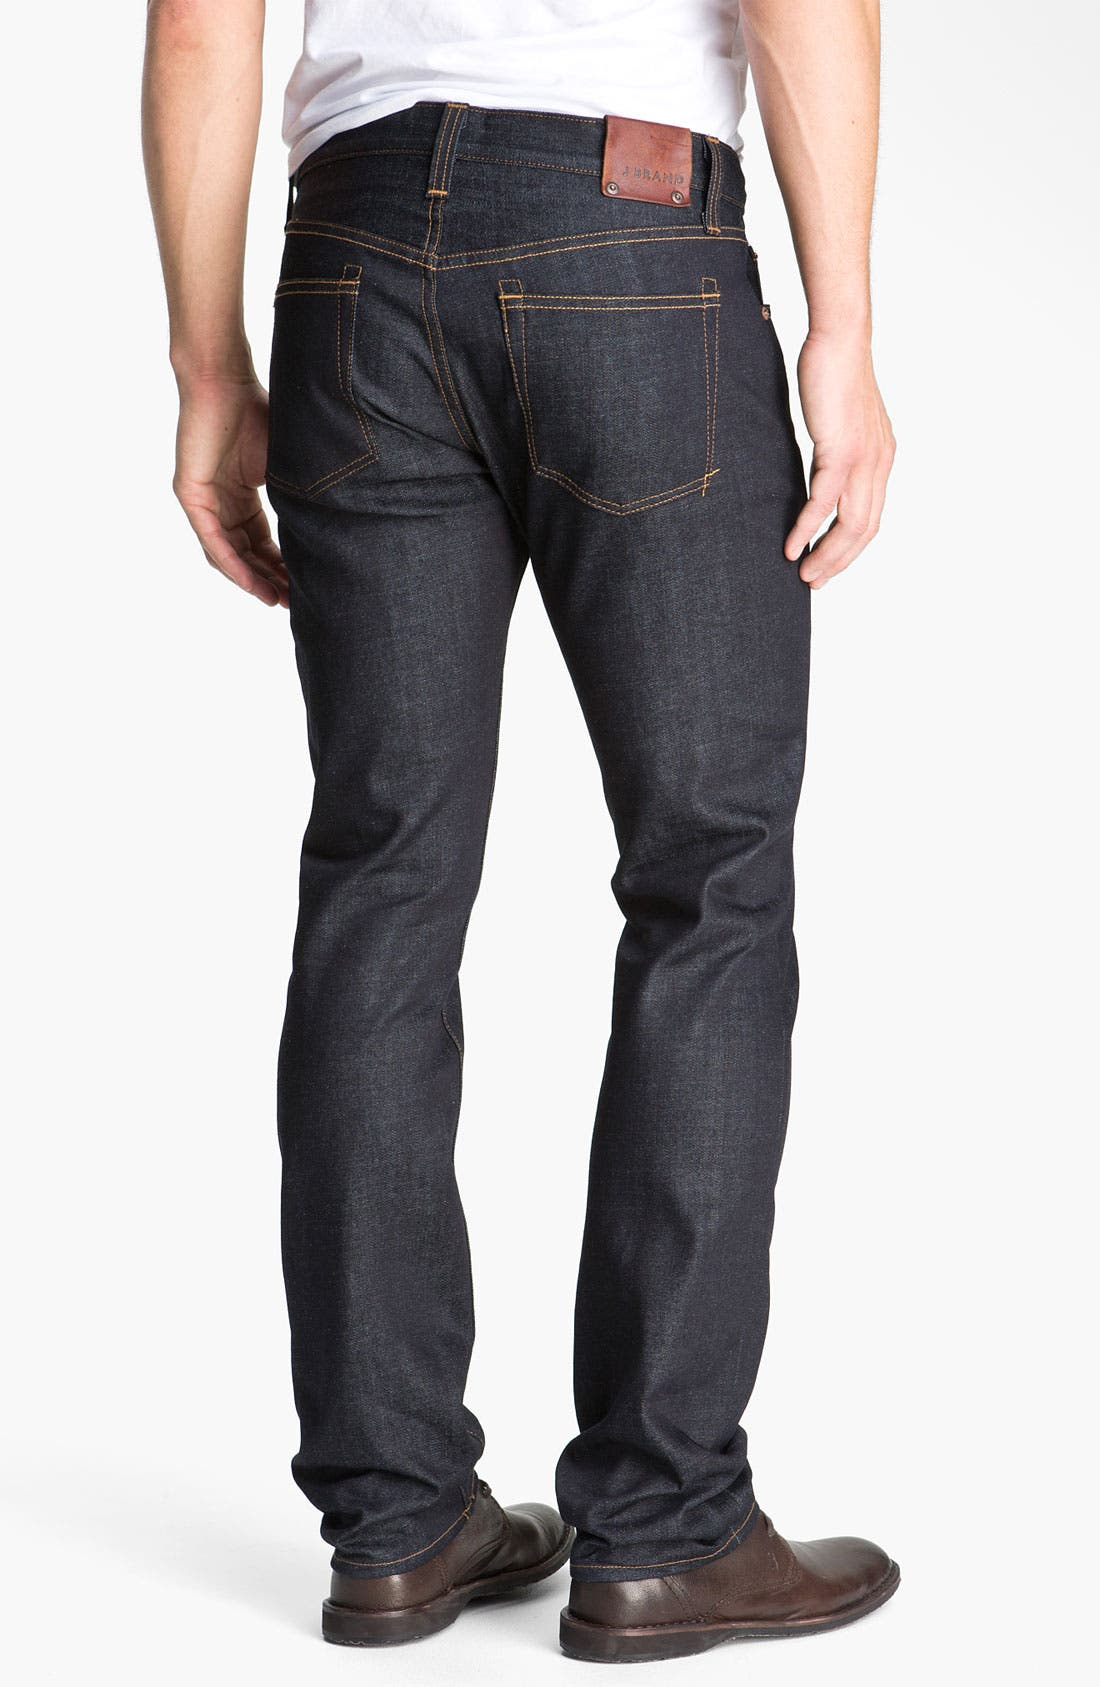 Kane Slim Straight Leg Jeans,                             Alternate thumbnail 9, color,                             RAW